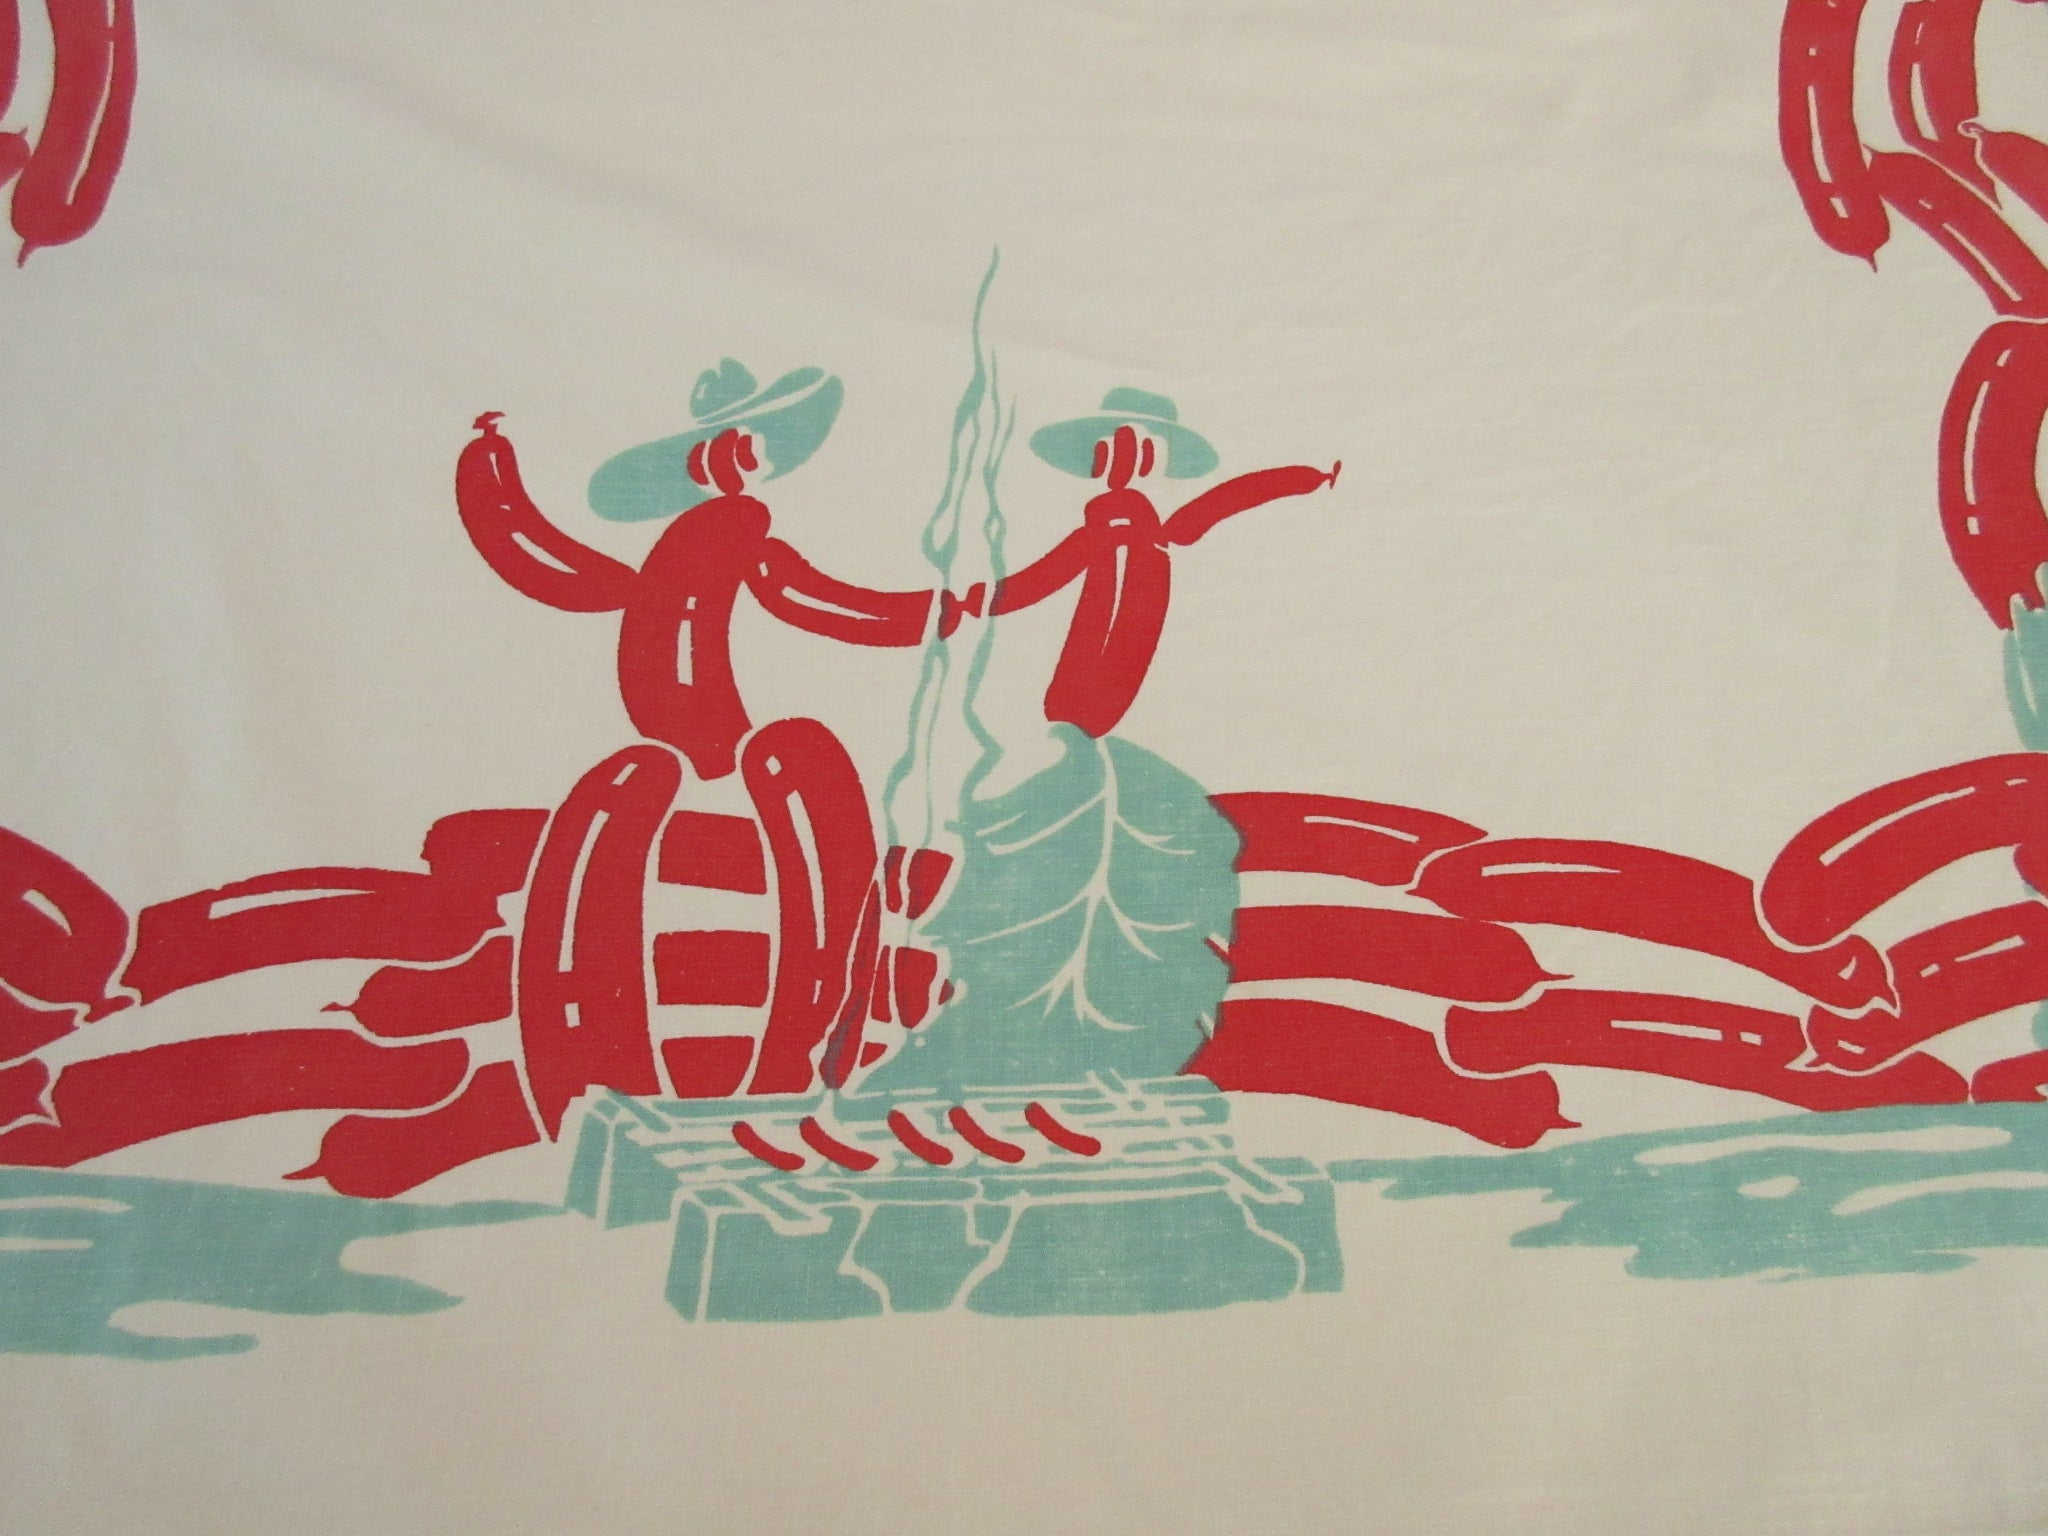 Rare IMPERFECT Hot Dog Cowboy Horse Novelty Vintage Printed Tablecloth (80 X 35)